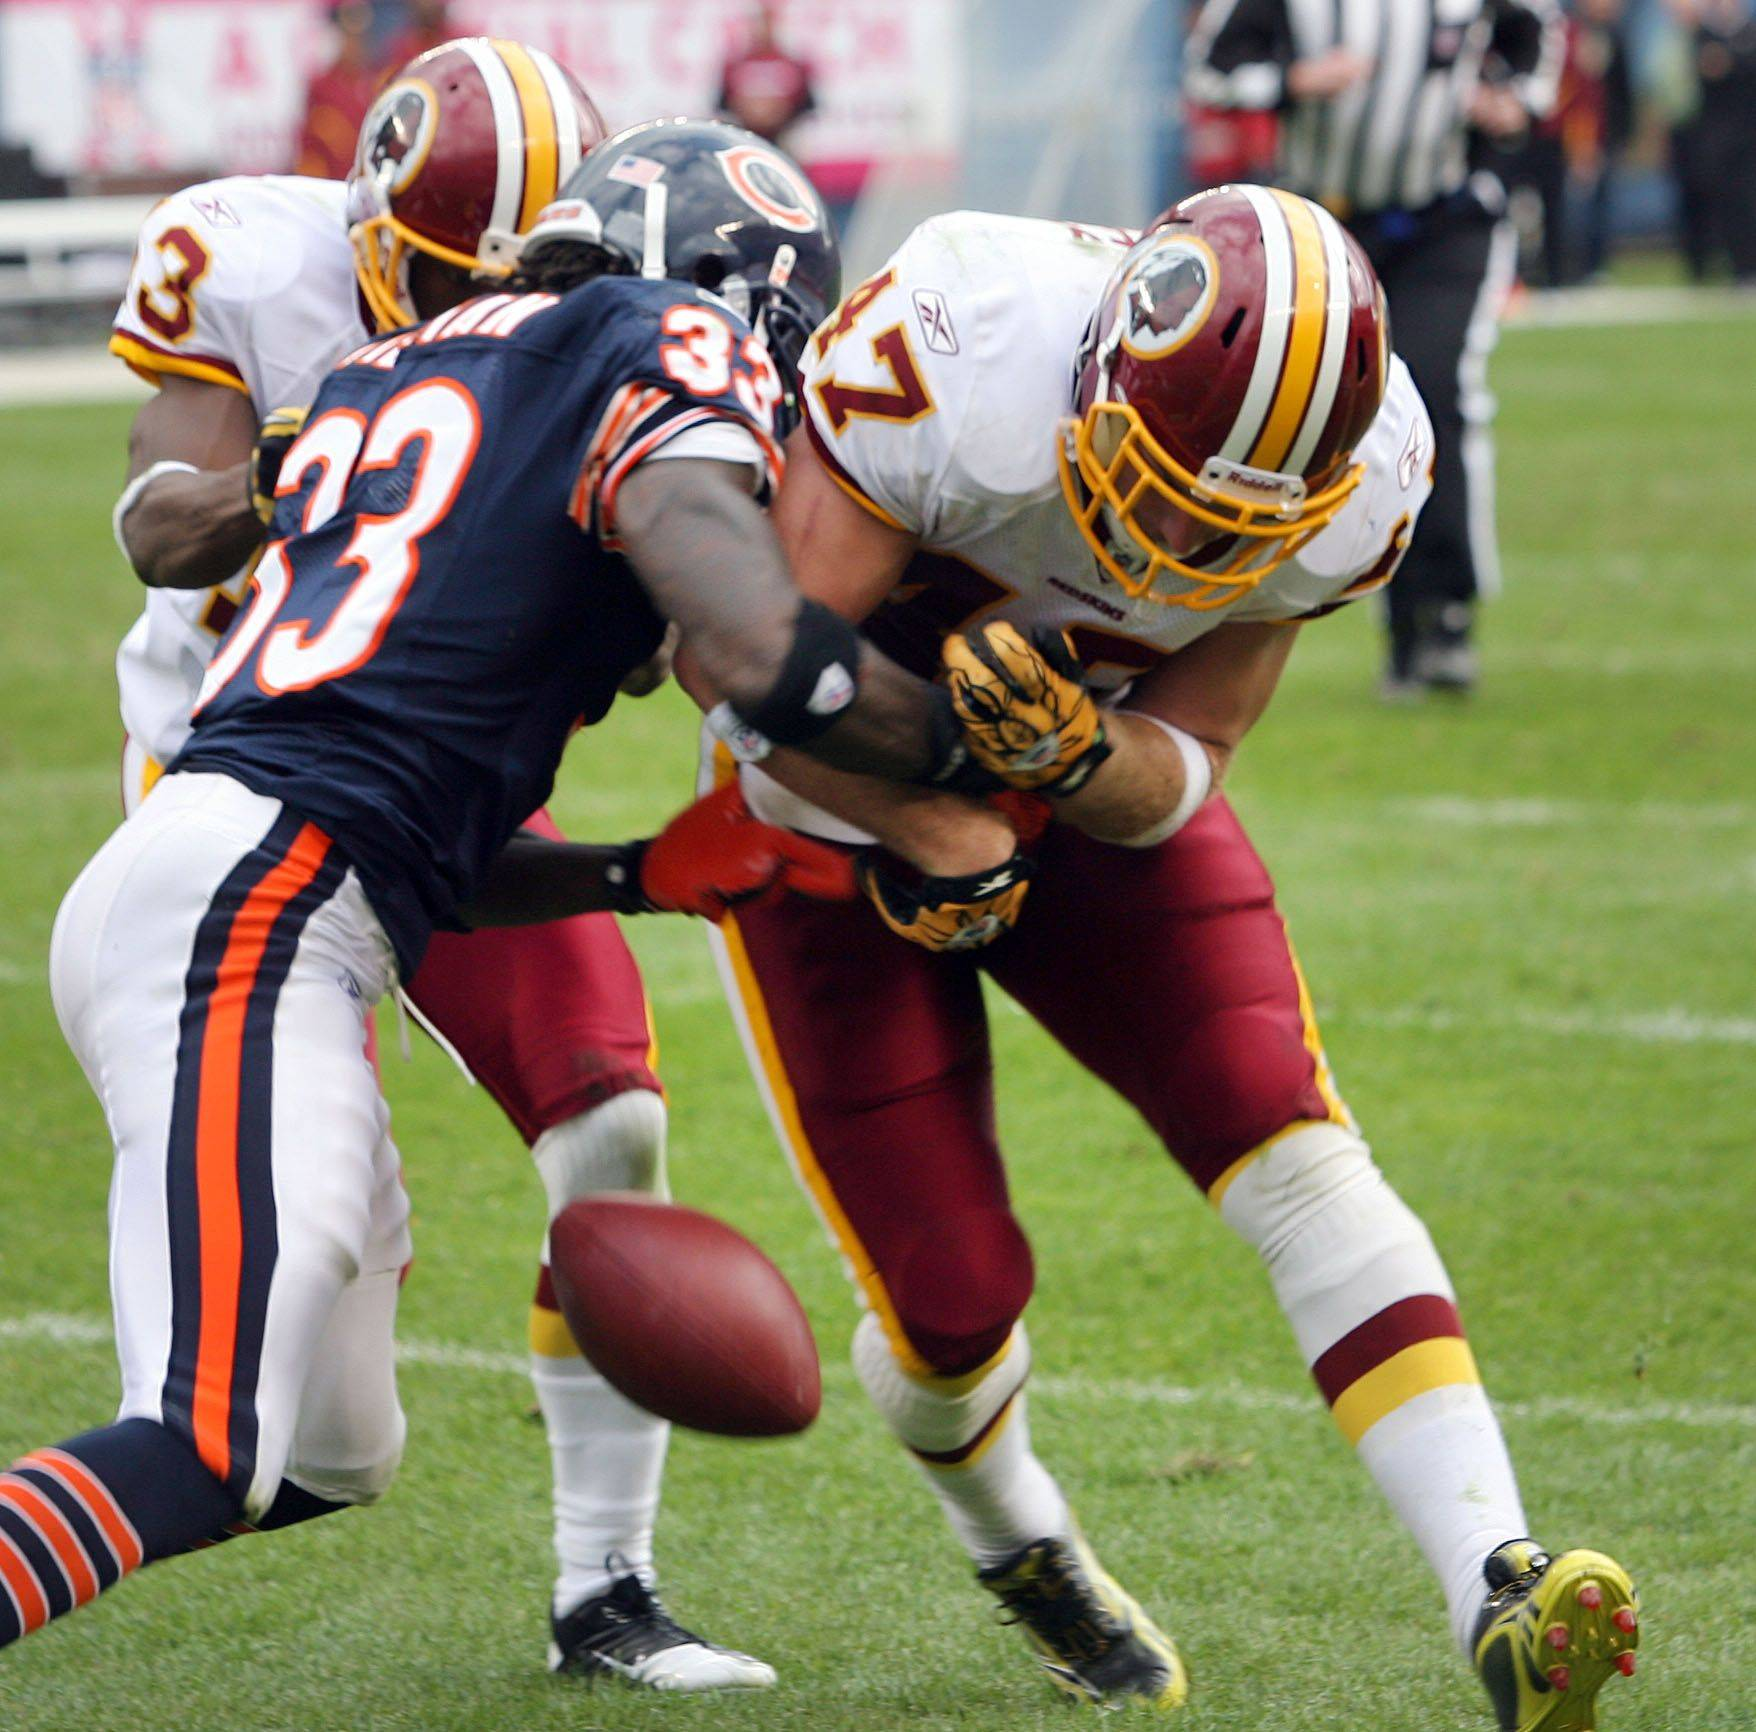 Chicago Bears cornerback Charles Tillman forces a fumble from Washington Redskins tight end Chris Cooley during the Bears' 14-17 loss to the Redskins.